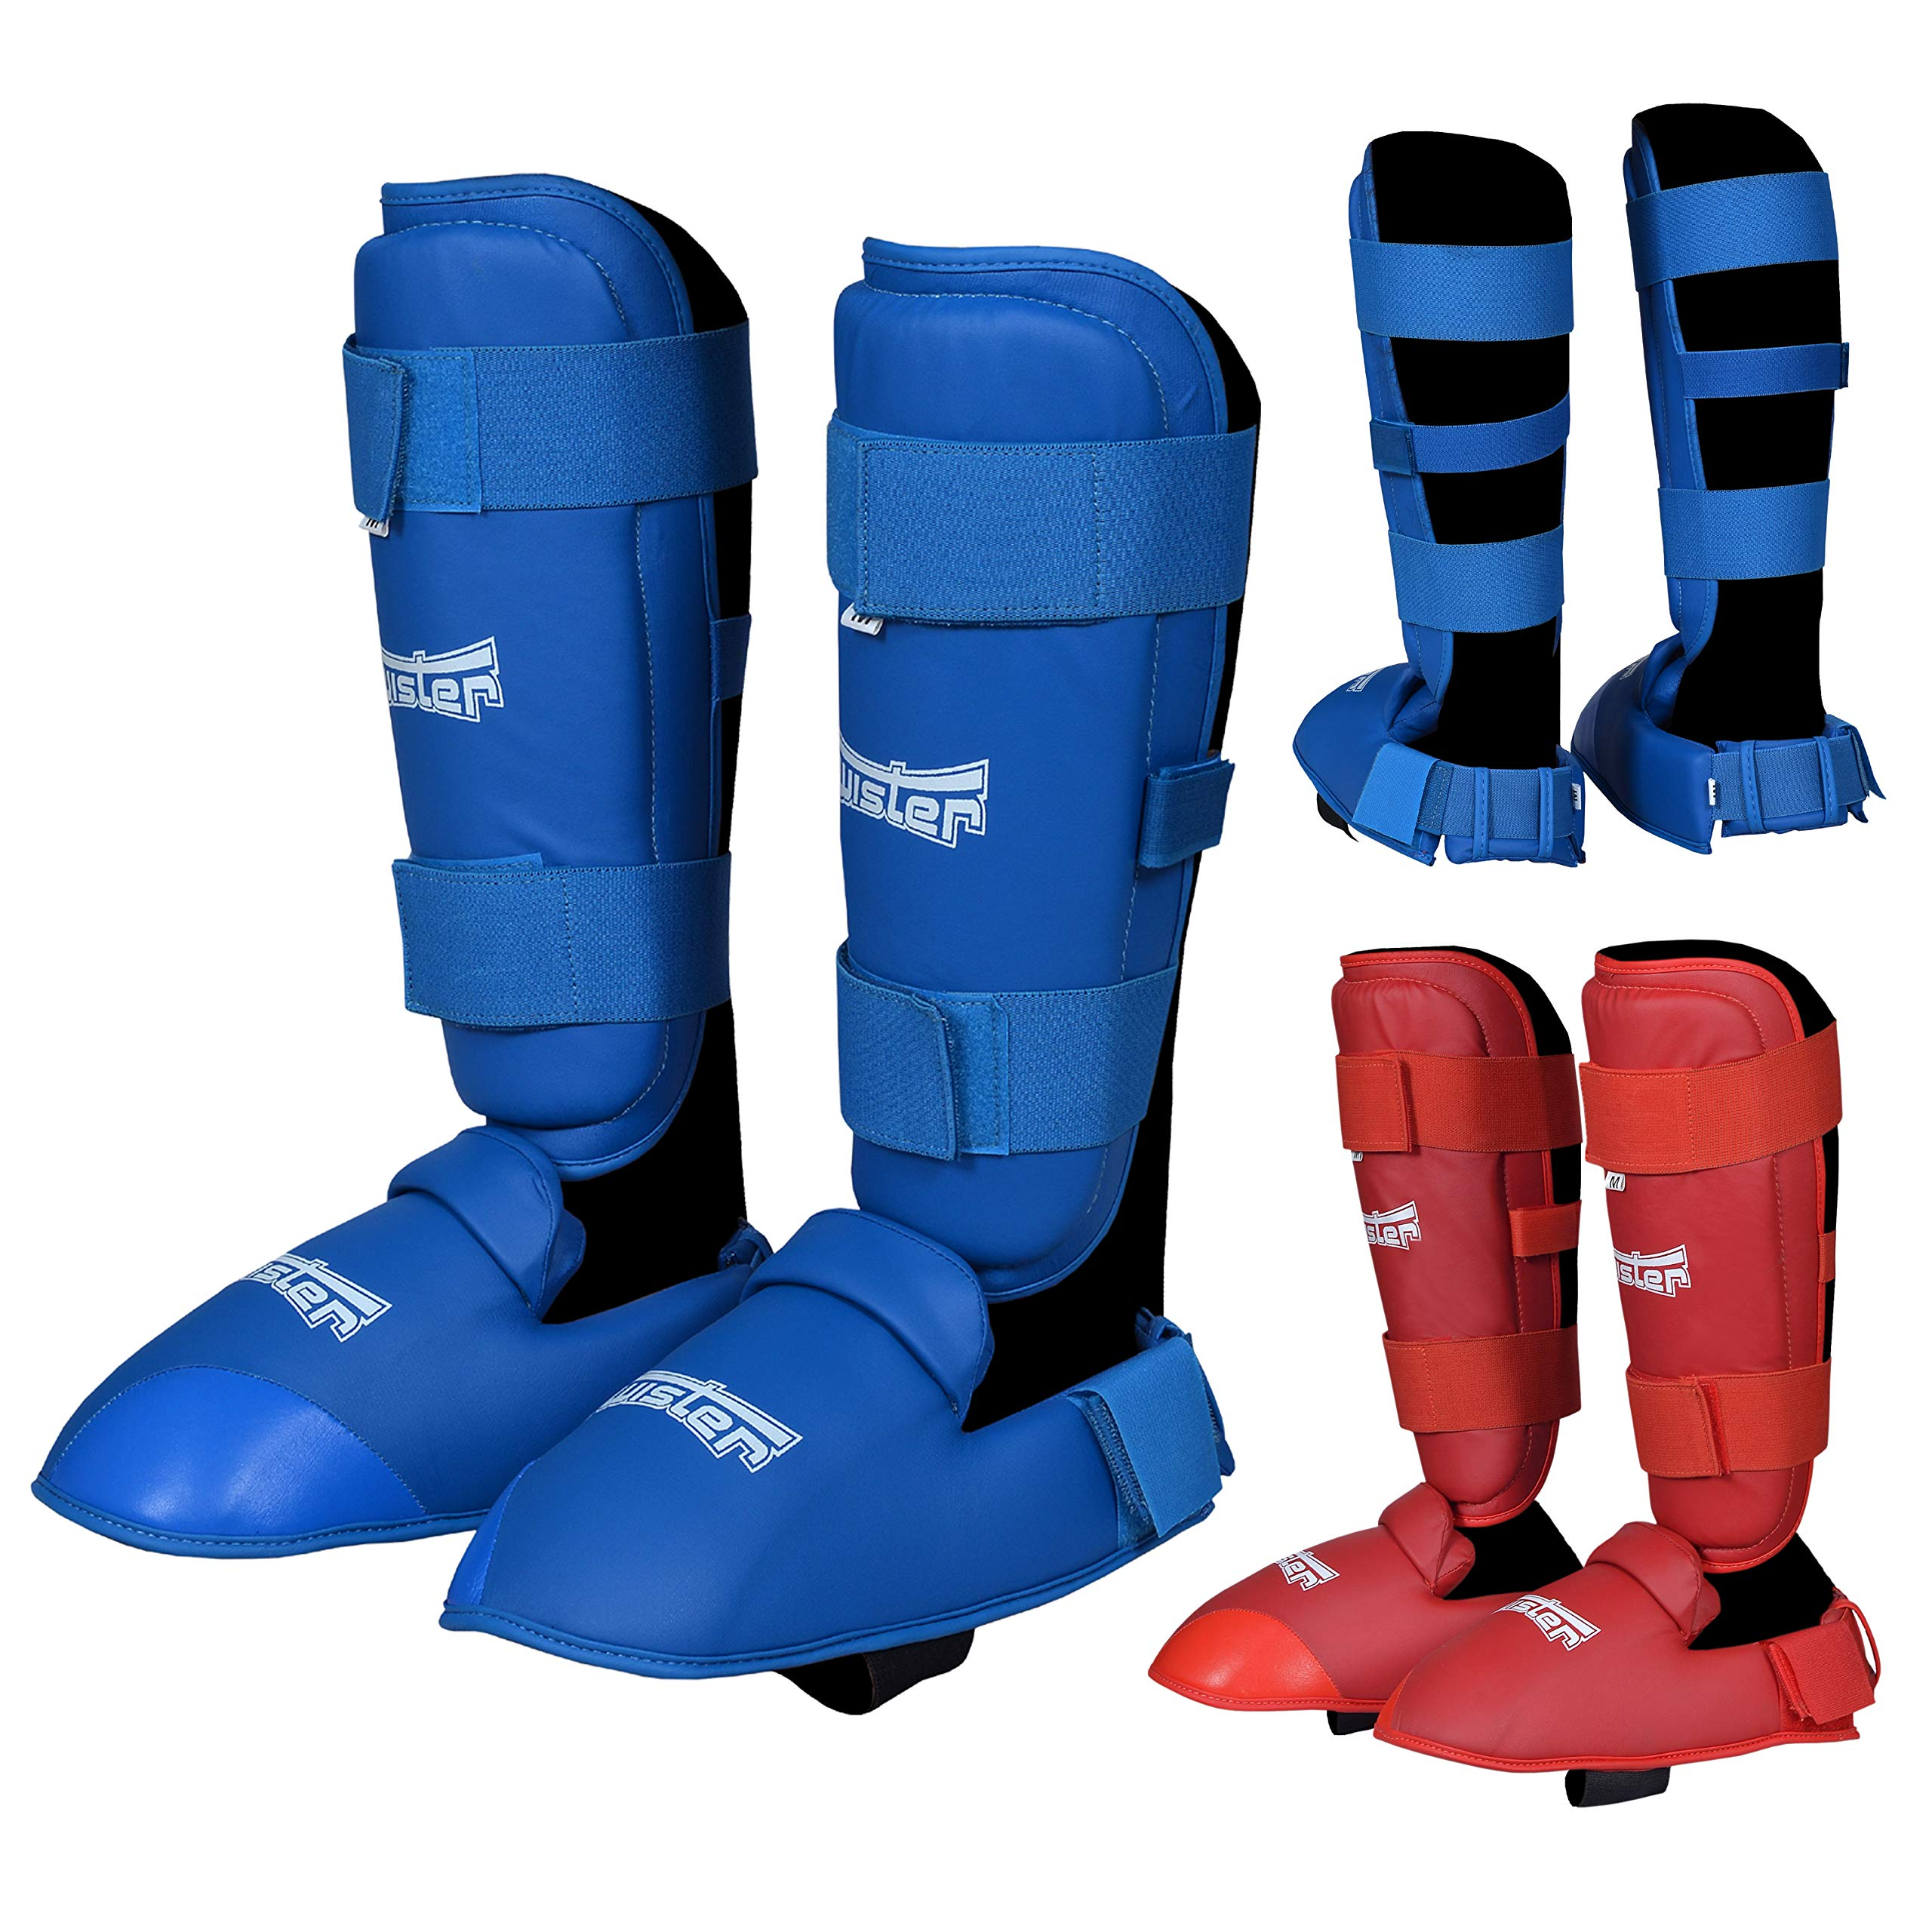 Twister Muay Thai, Boxing, Kickboxing,Karate, Taekwondo, MMA Shin & Instep Padded Guards, Shin in Steps, Shin Guards, Different Sizes (Pair) (Blue, S) by TWISTER FIGHT WEAR